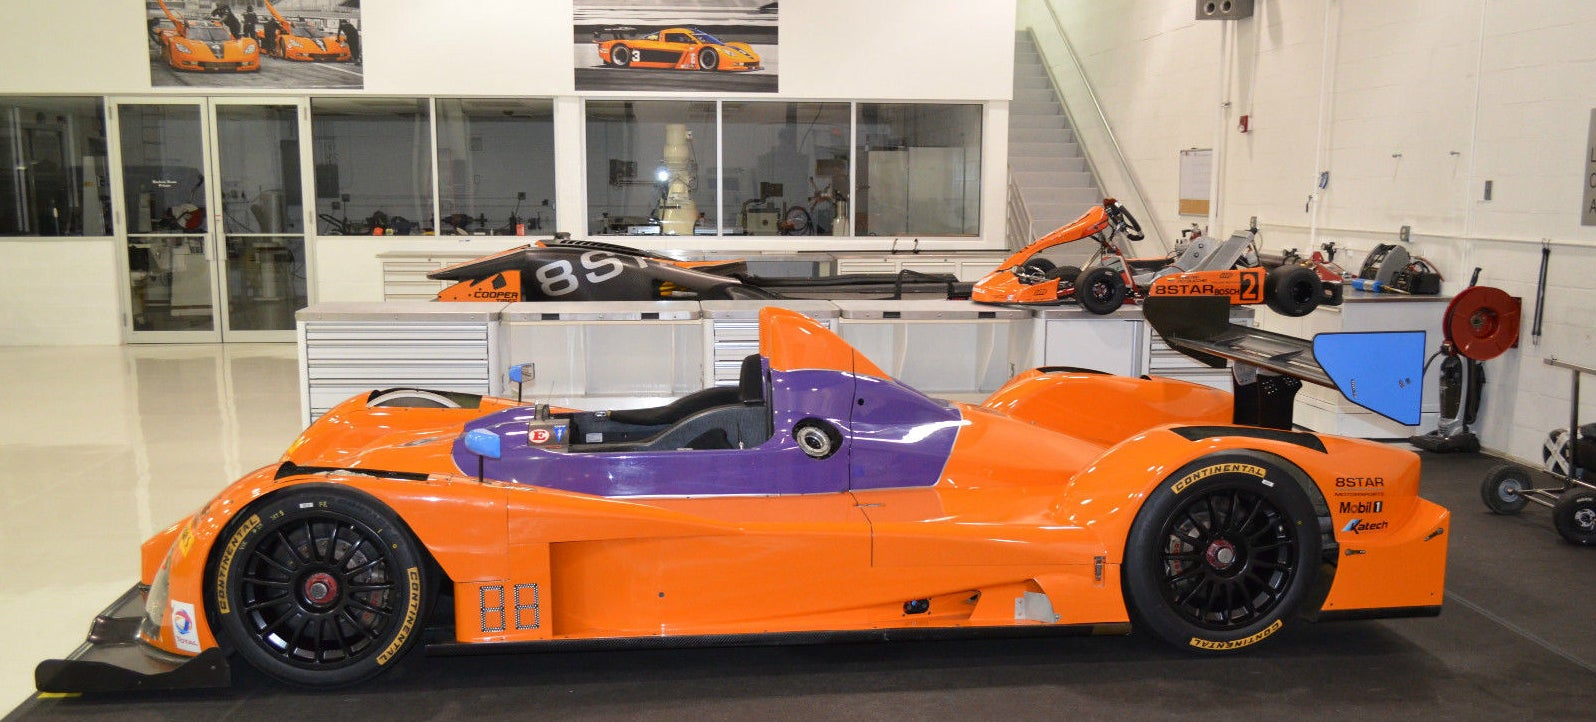 Need An Orange Race Car 8 Star Motorsports Has Some For Sale